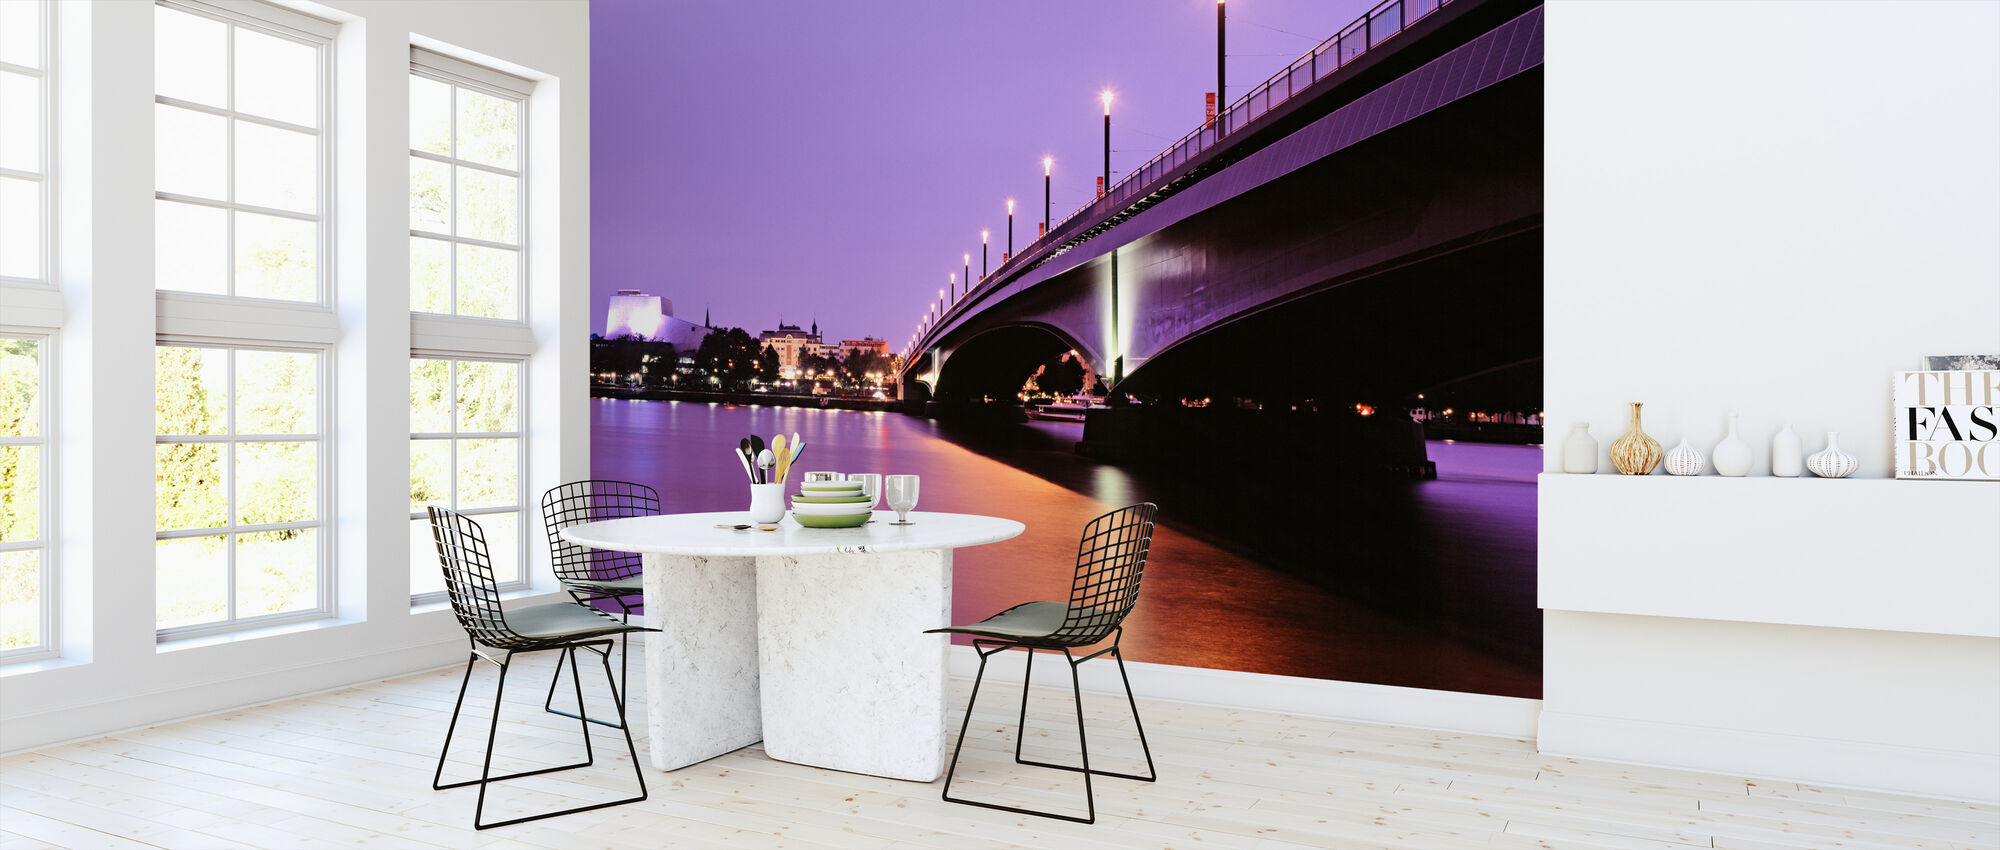 Kennedy Bridge over the River Rhine - Wallpaper - Kitchen